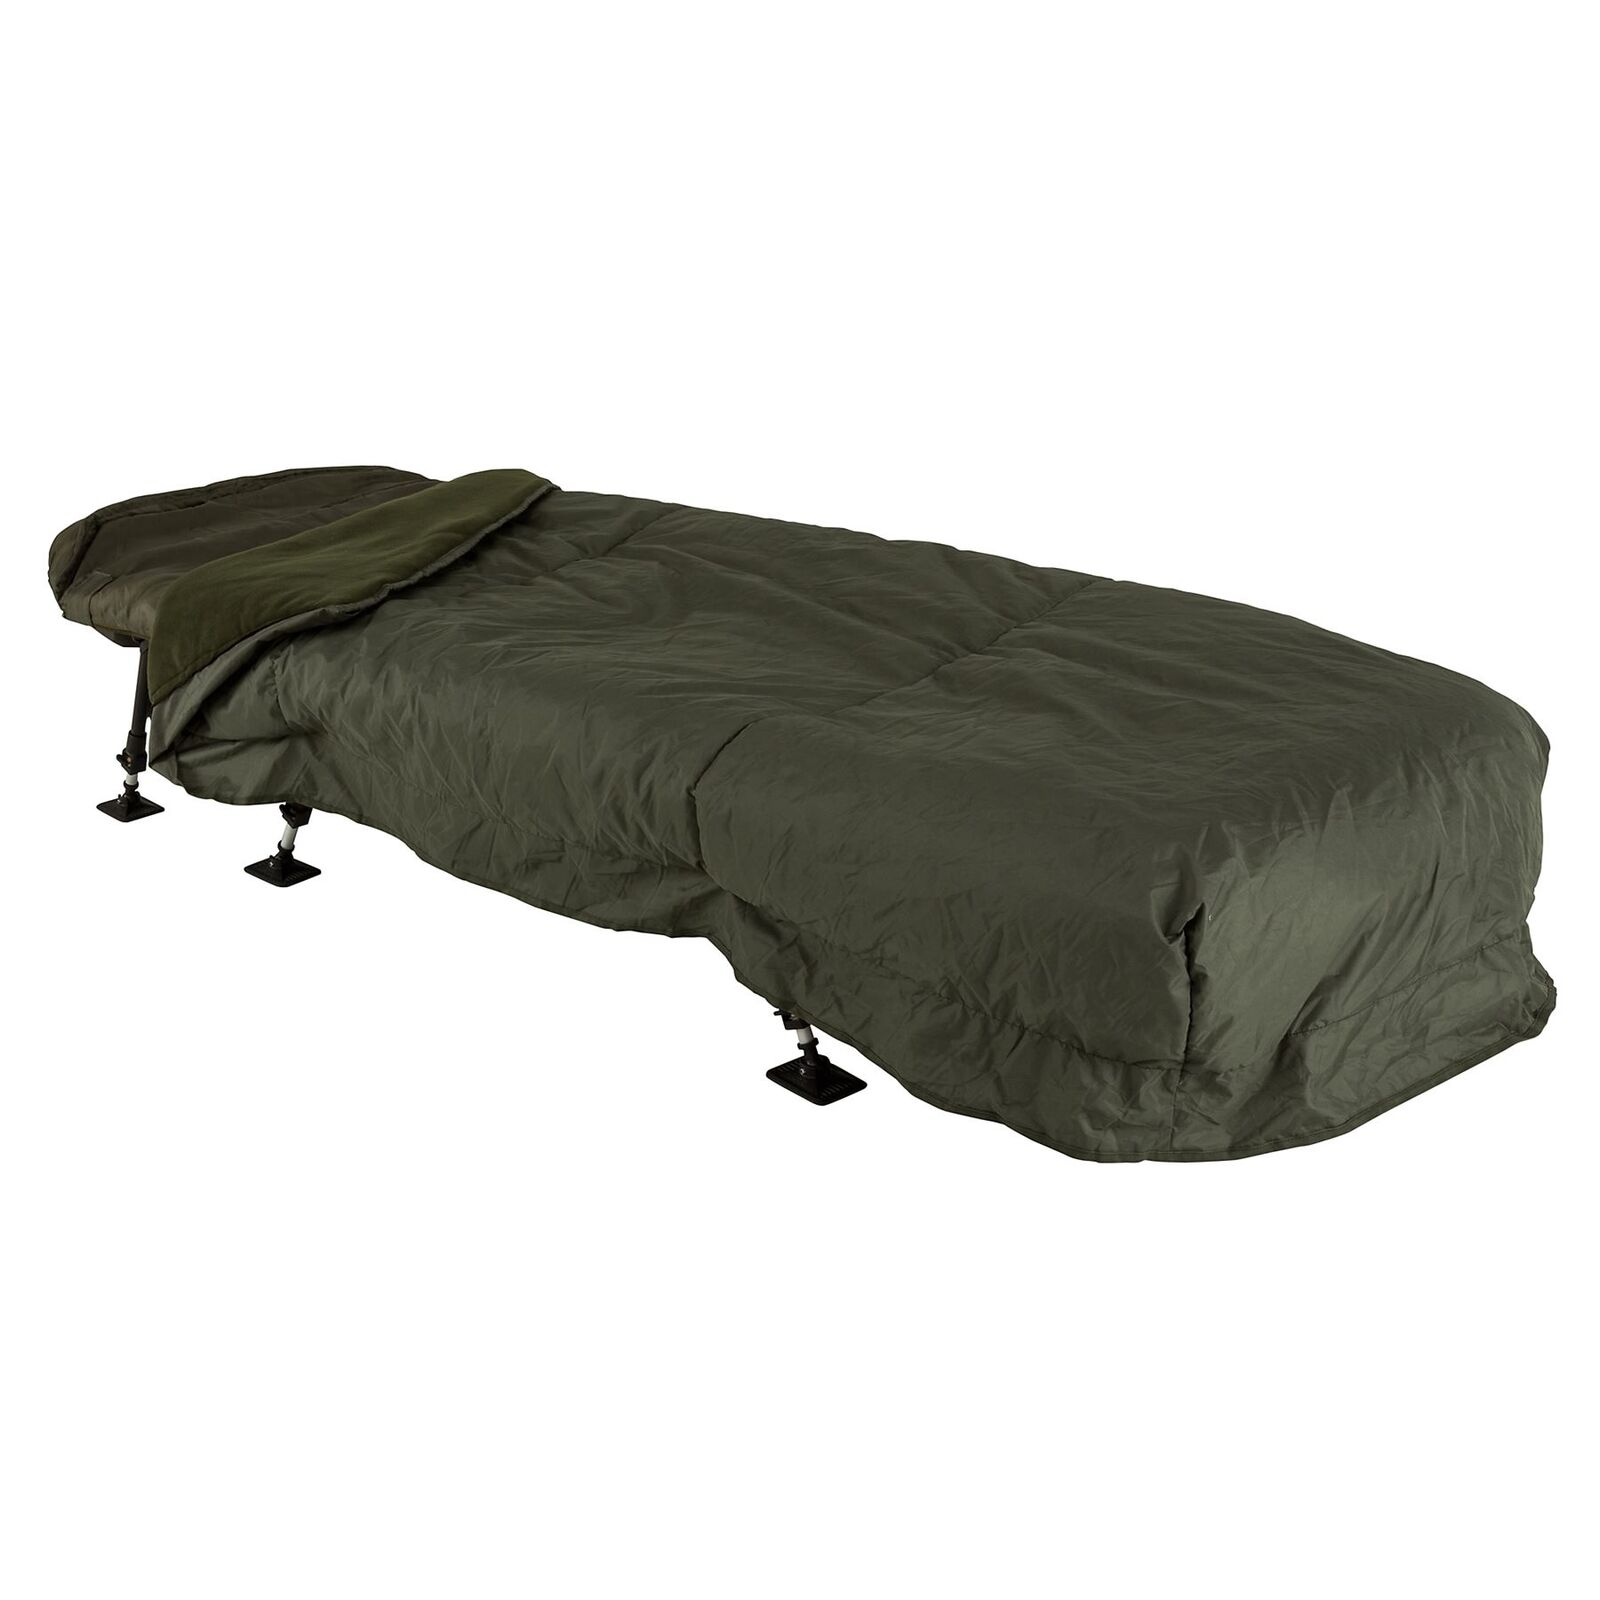 JRC Defender Sleeping Bag & Cover Combo   Carp Fishing